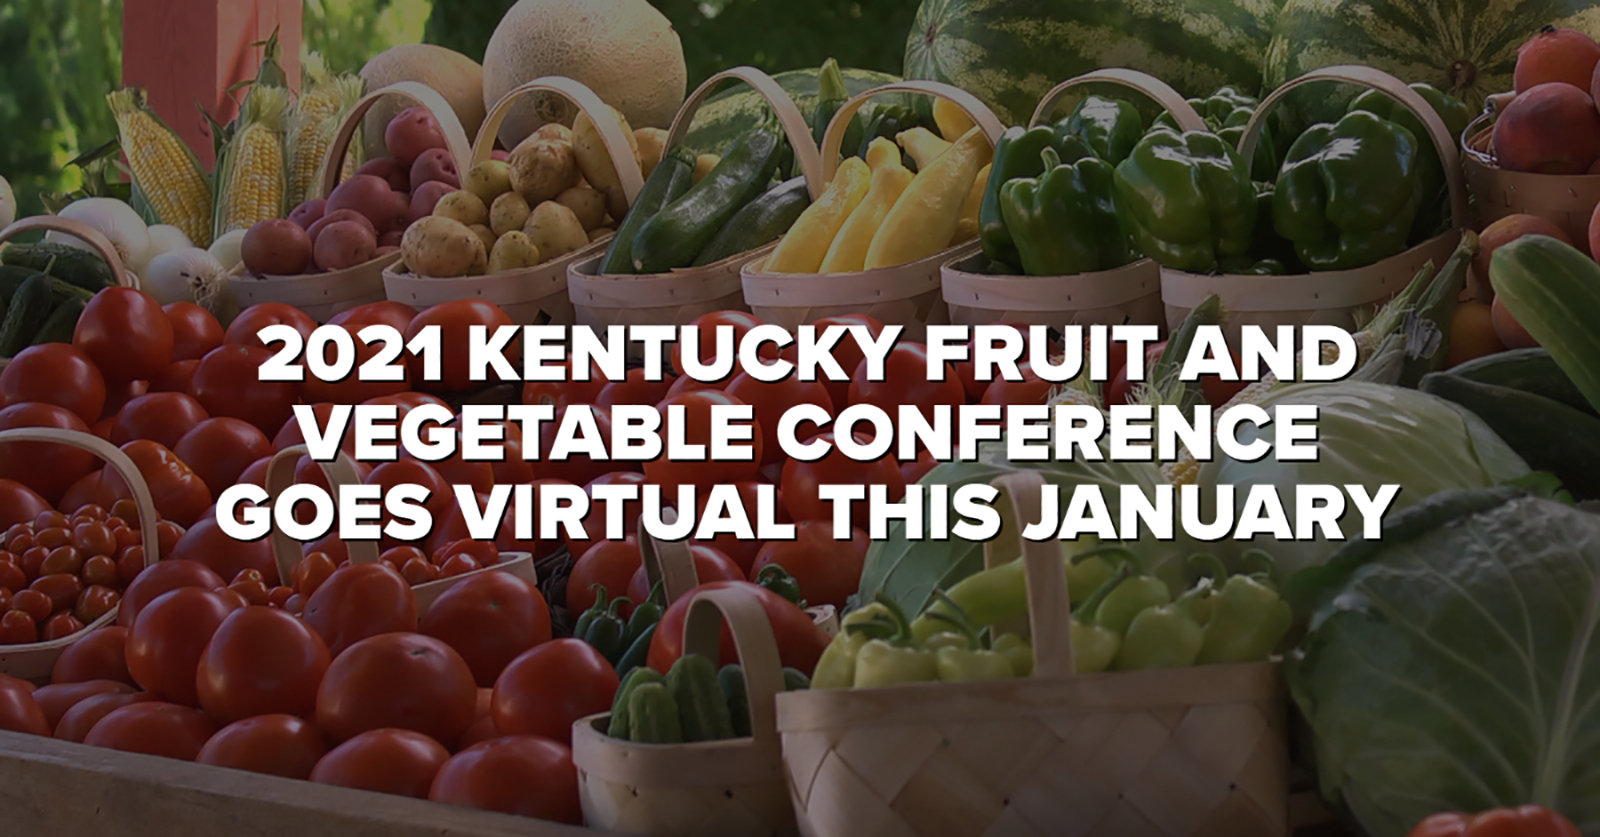 2021 Kentucky Fruit and Vegetable Conference